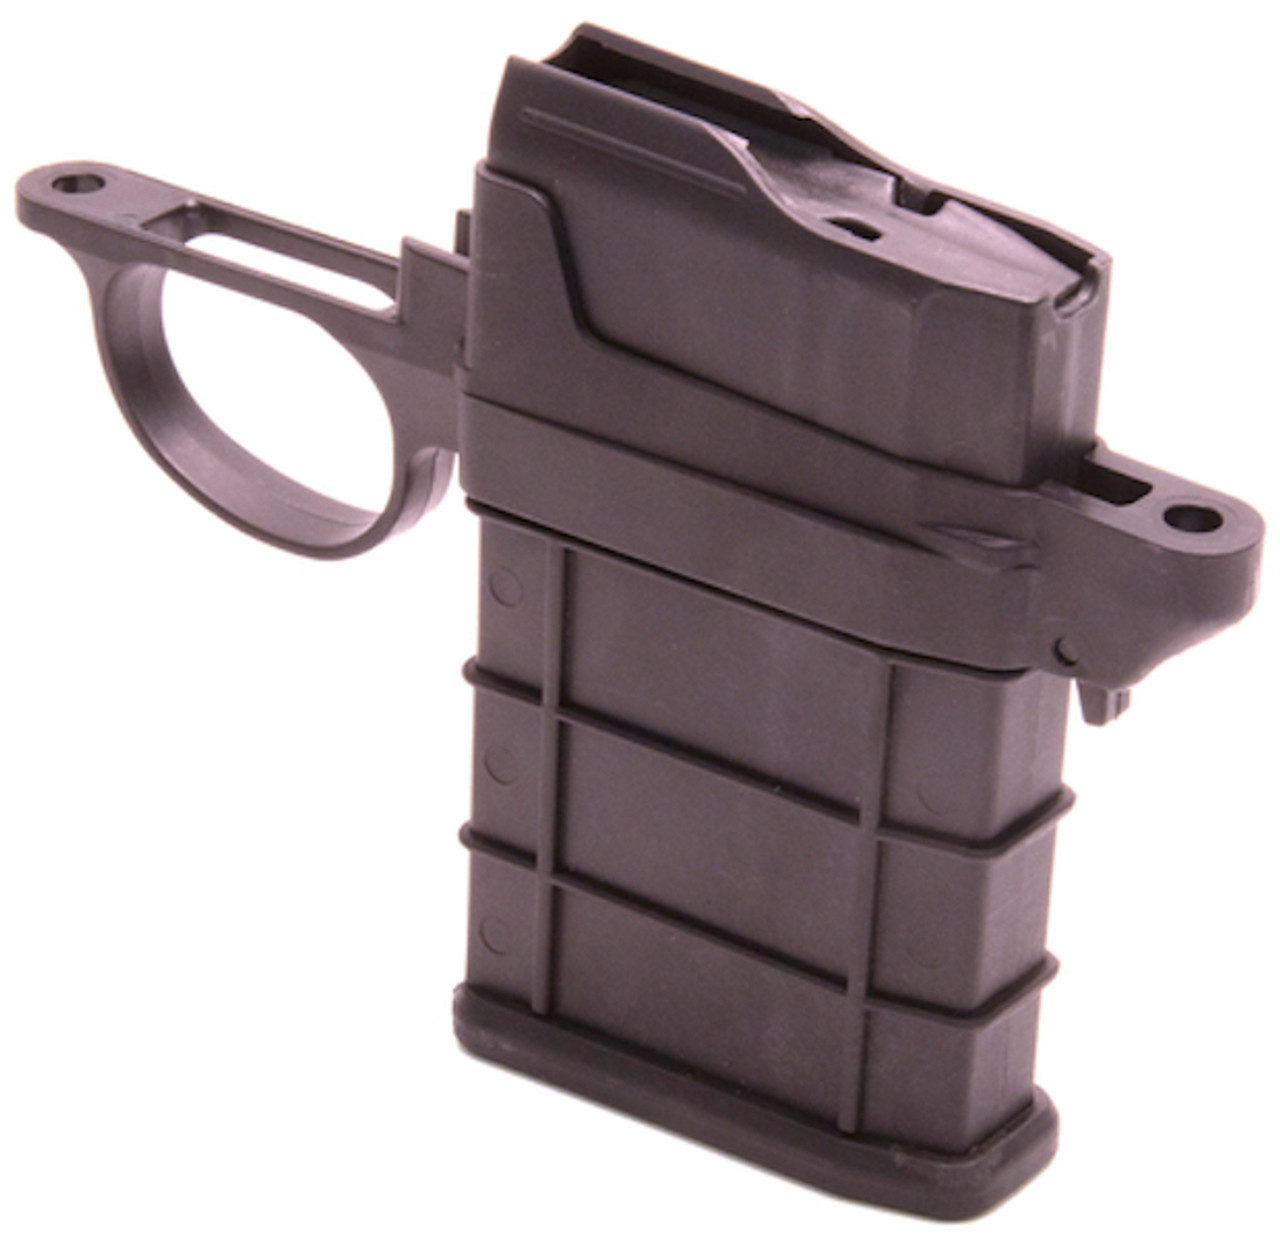 10 Round Magazine Conversion Kit For Remington 22-250 Caliber Rifles